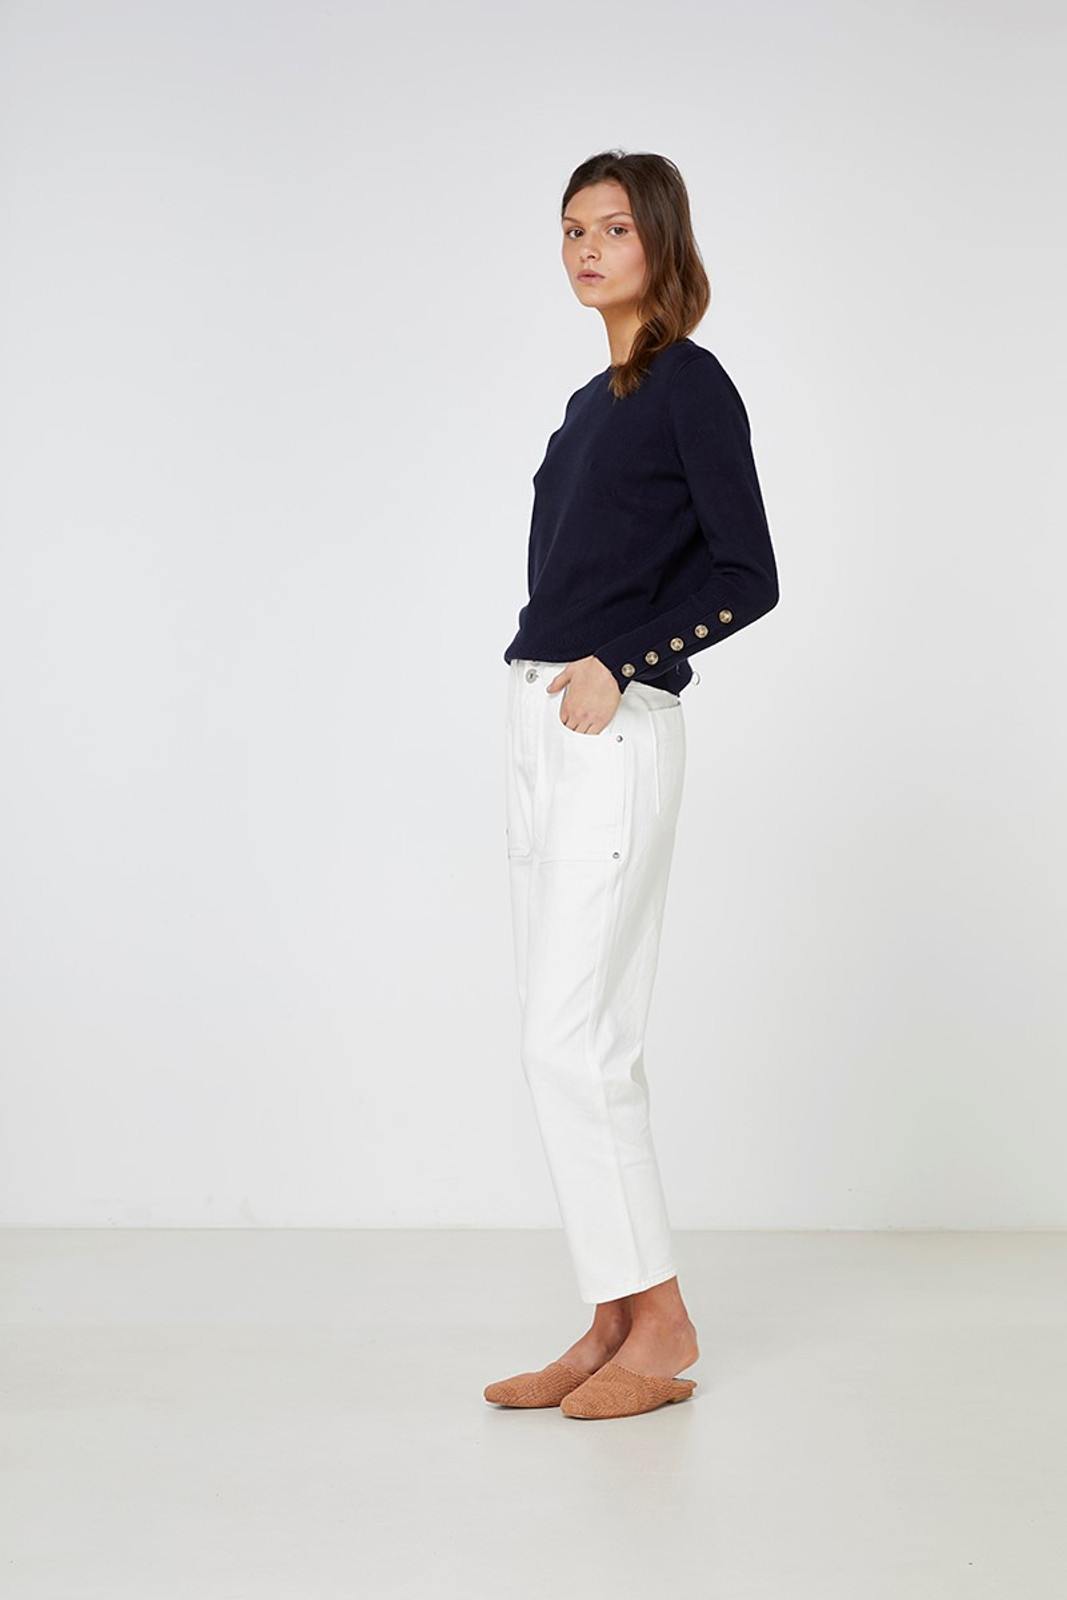 Elka Collective Mateo Knit Navy  1